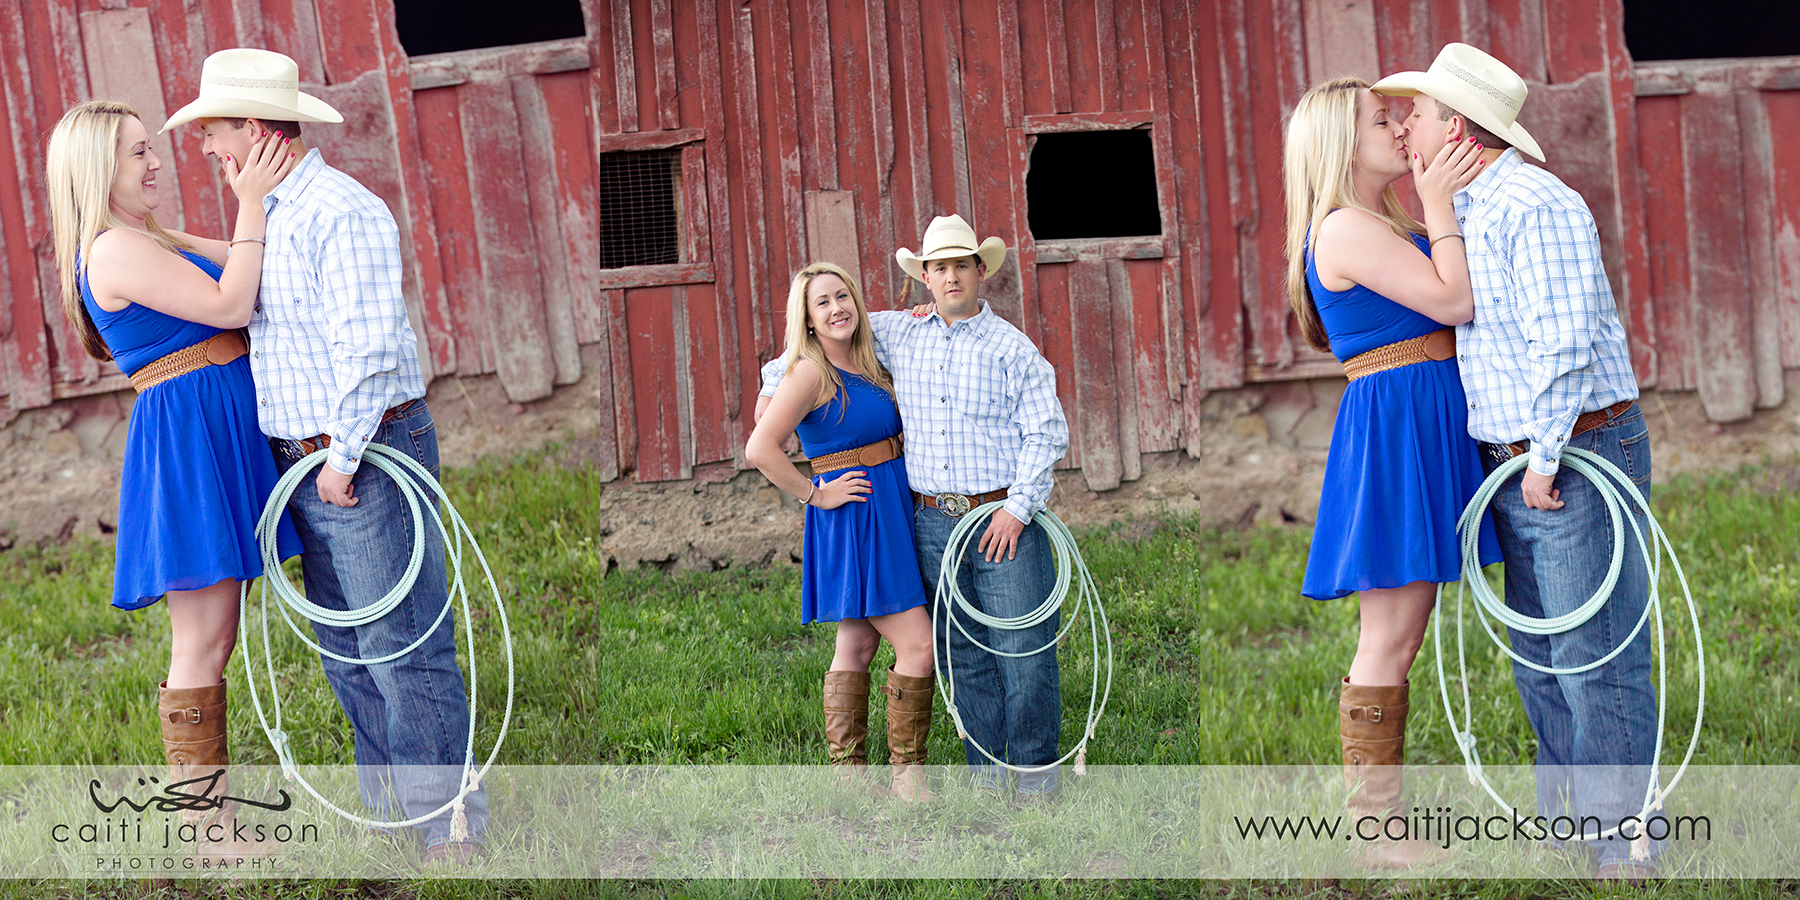 Wyoming wedding photographer, Caiti Jackson Photography, Gillette, Wyoming